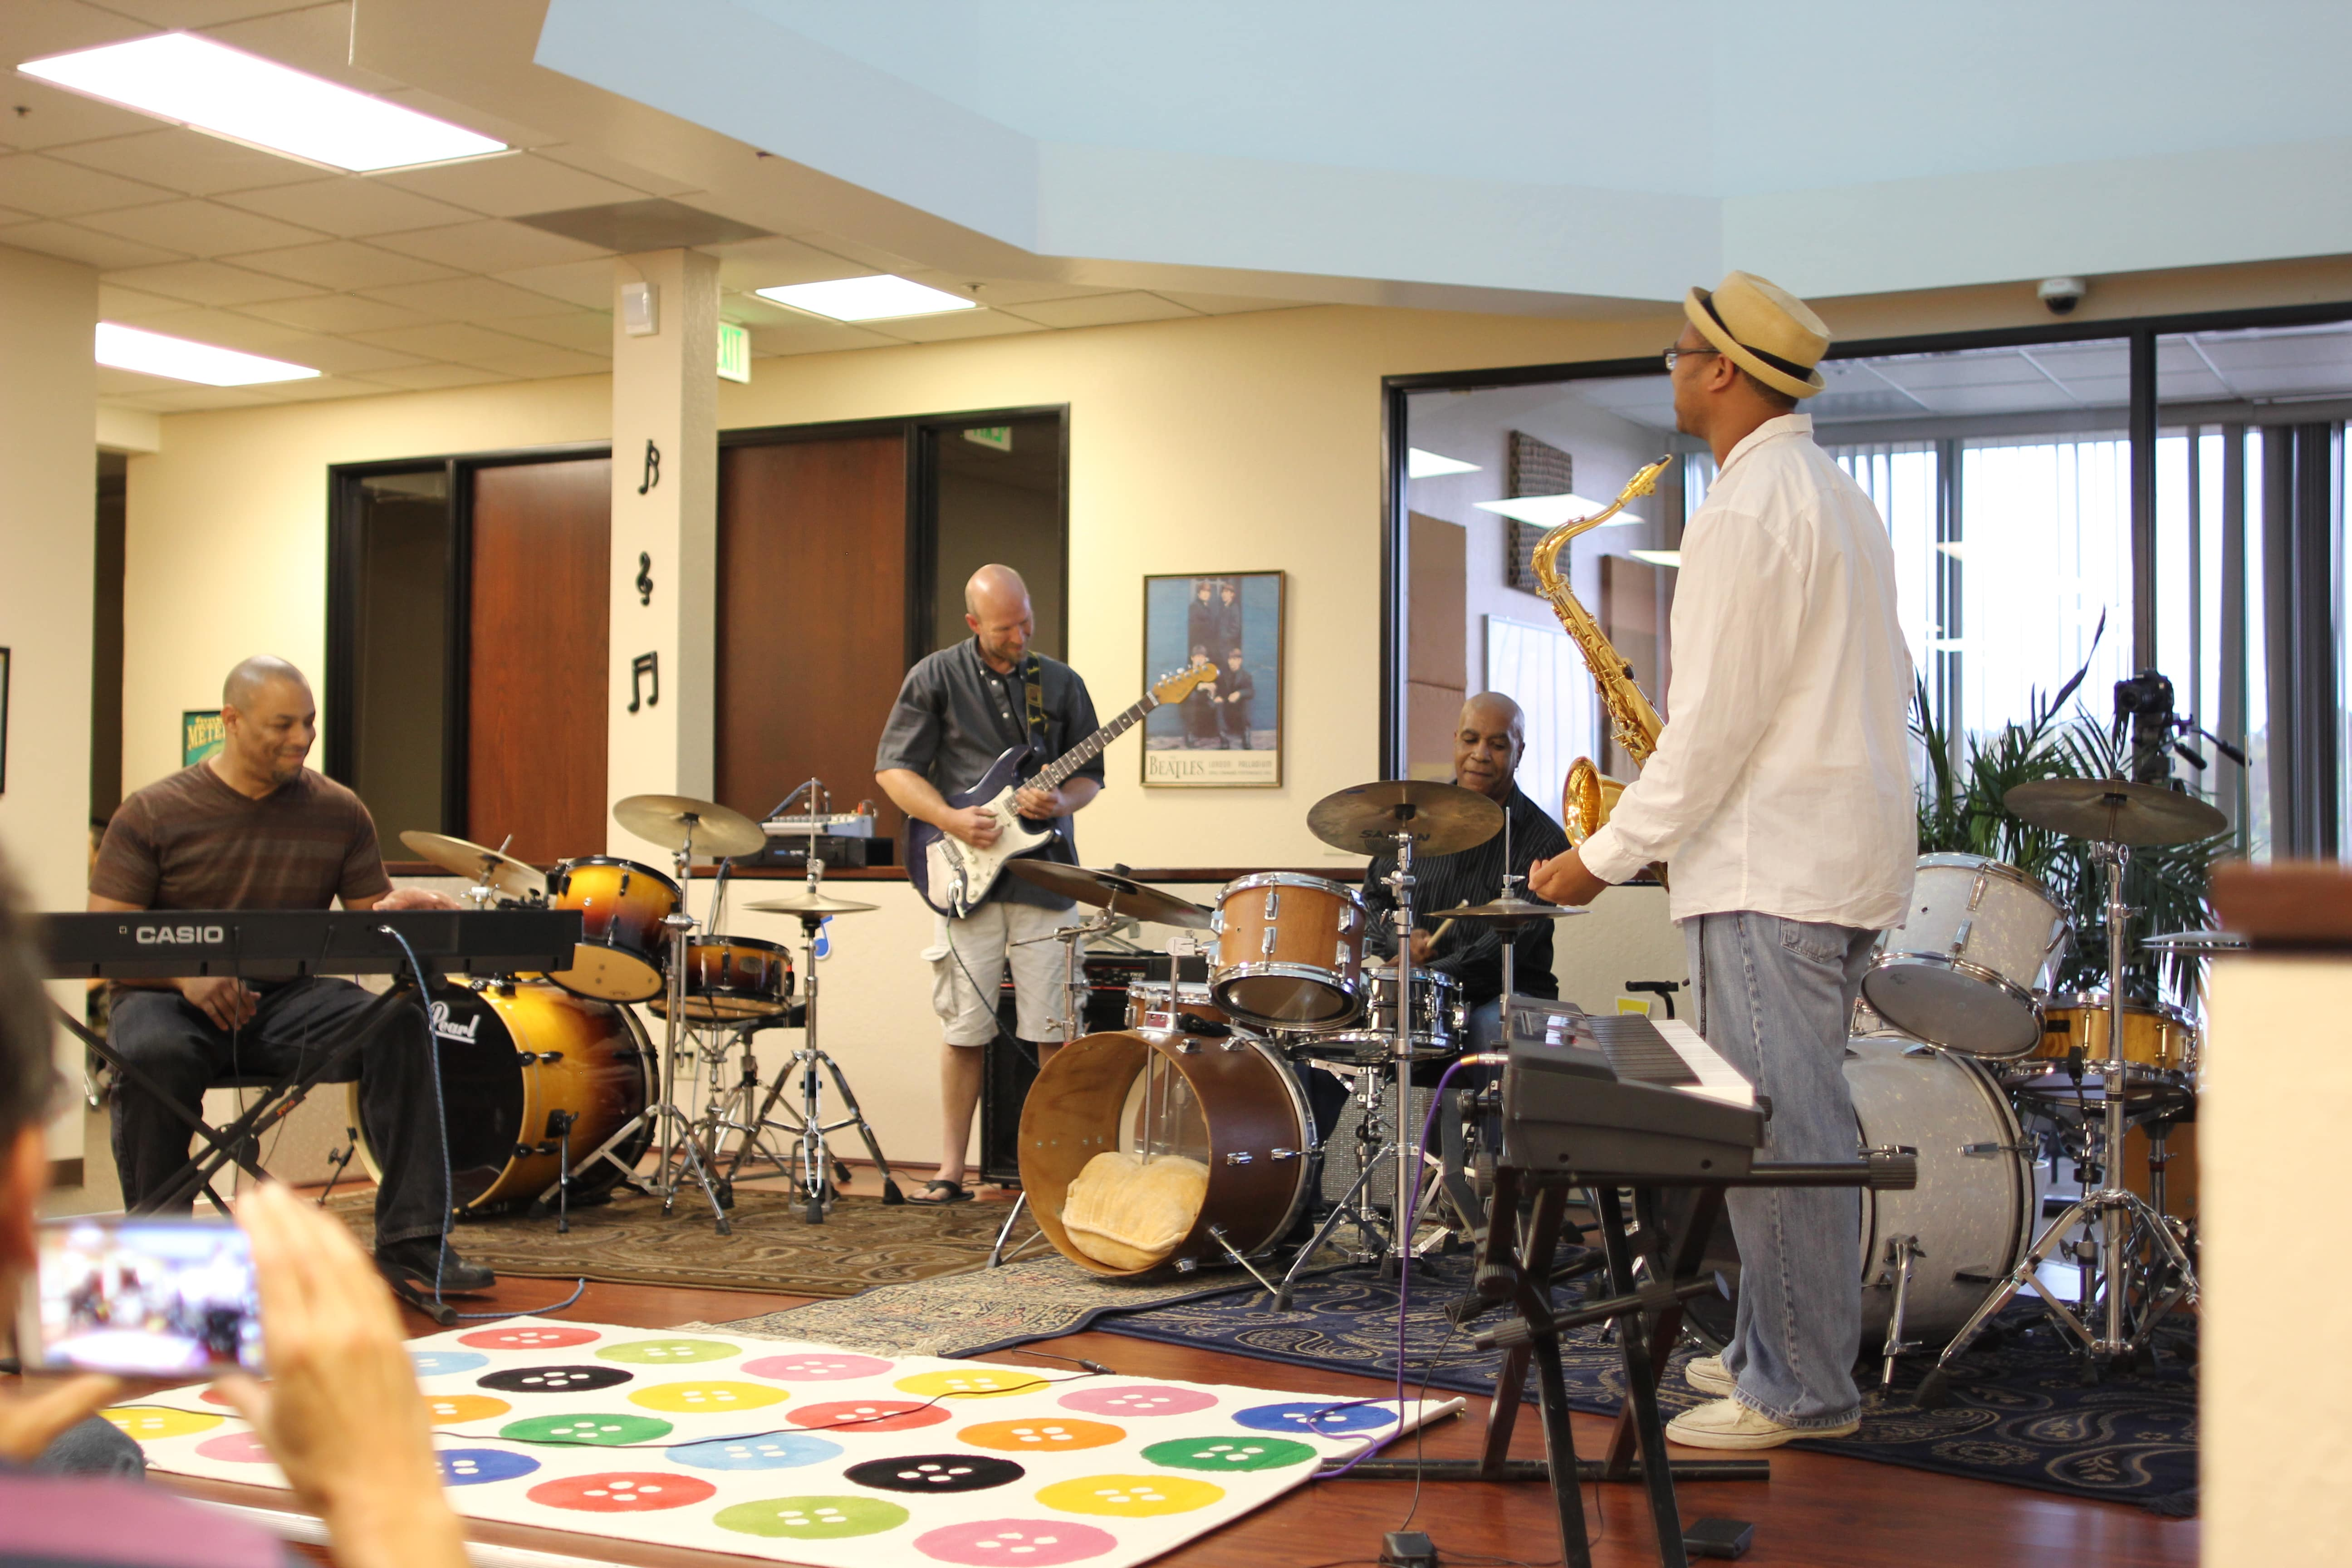 music lessons for kids and adults near me in castro valley ca